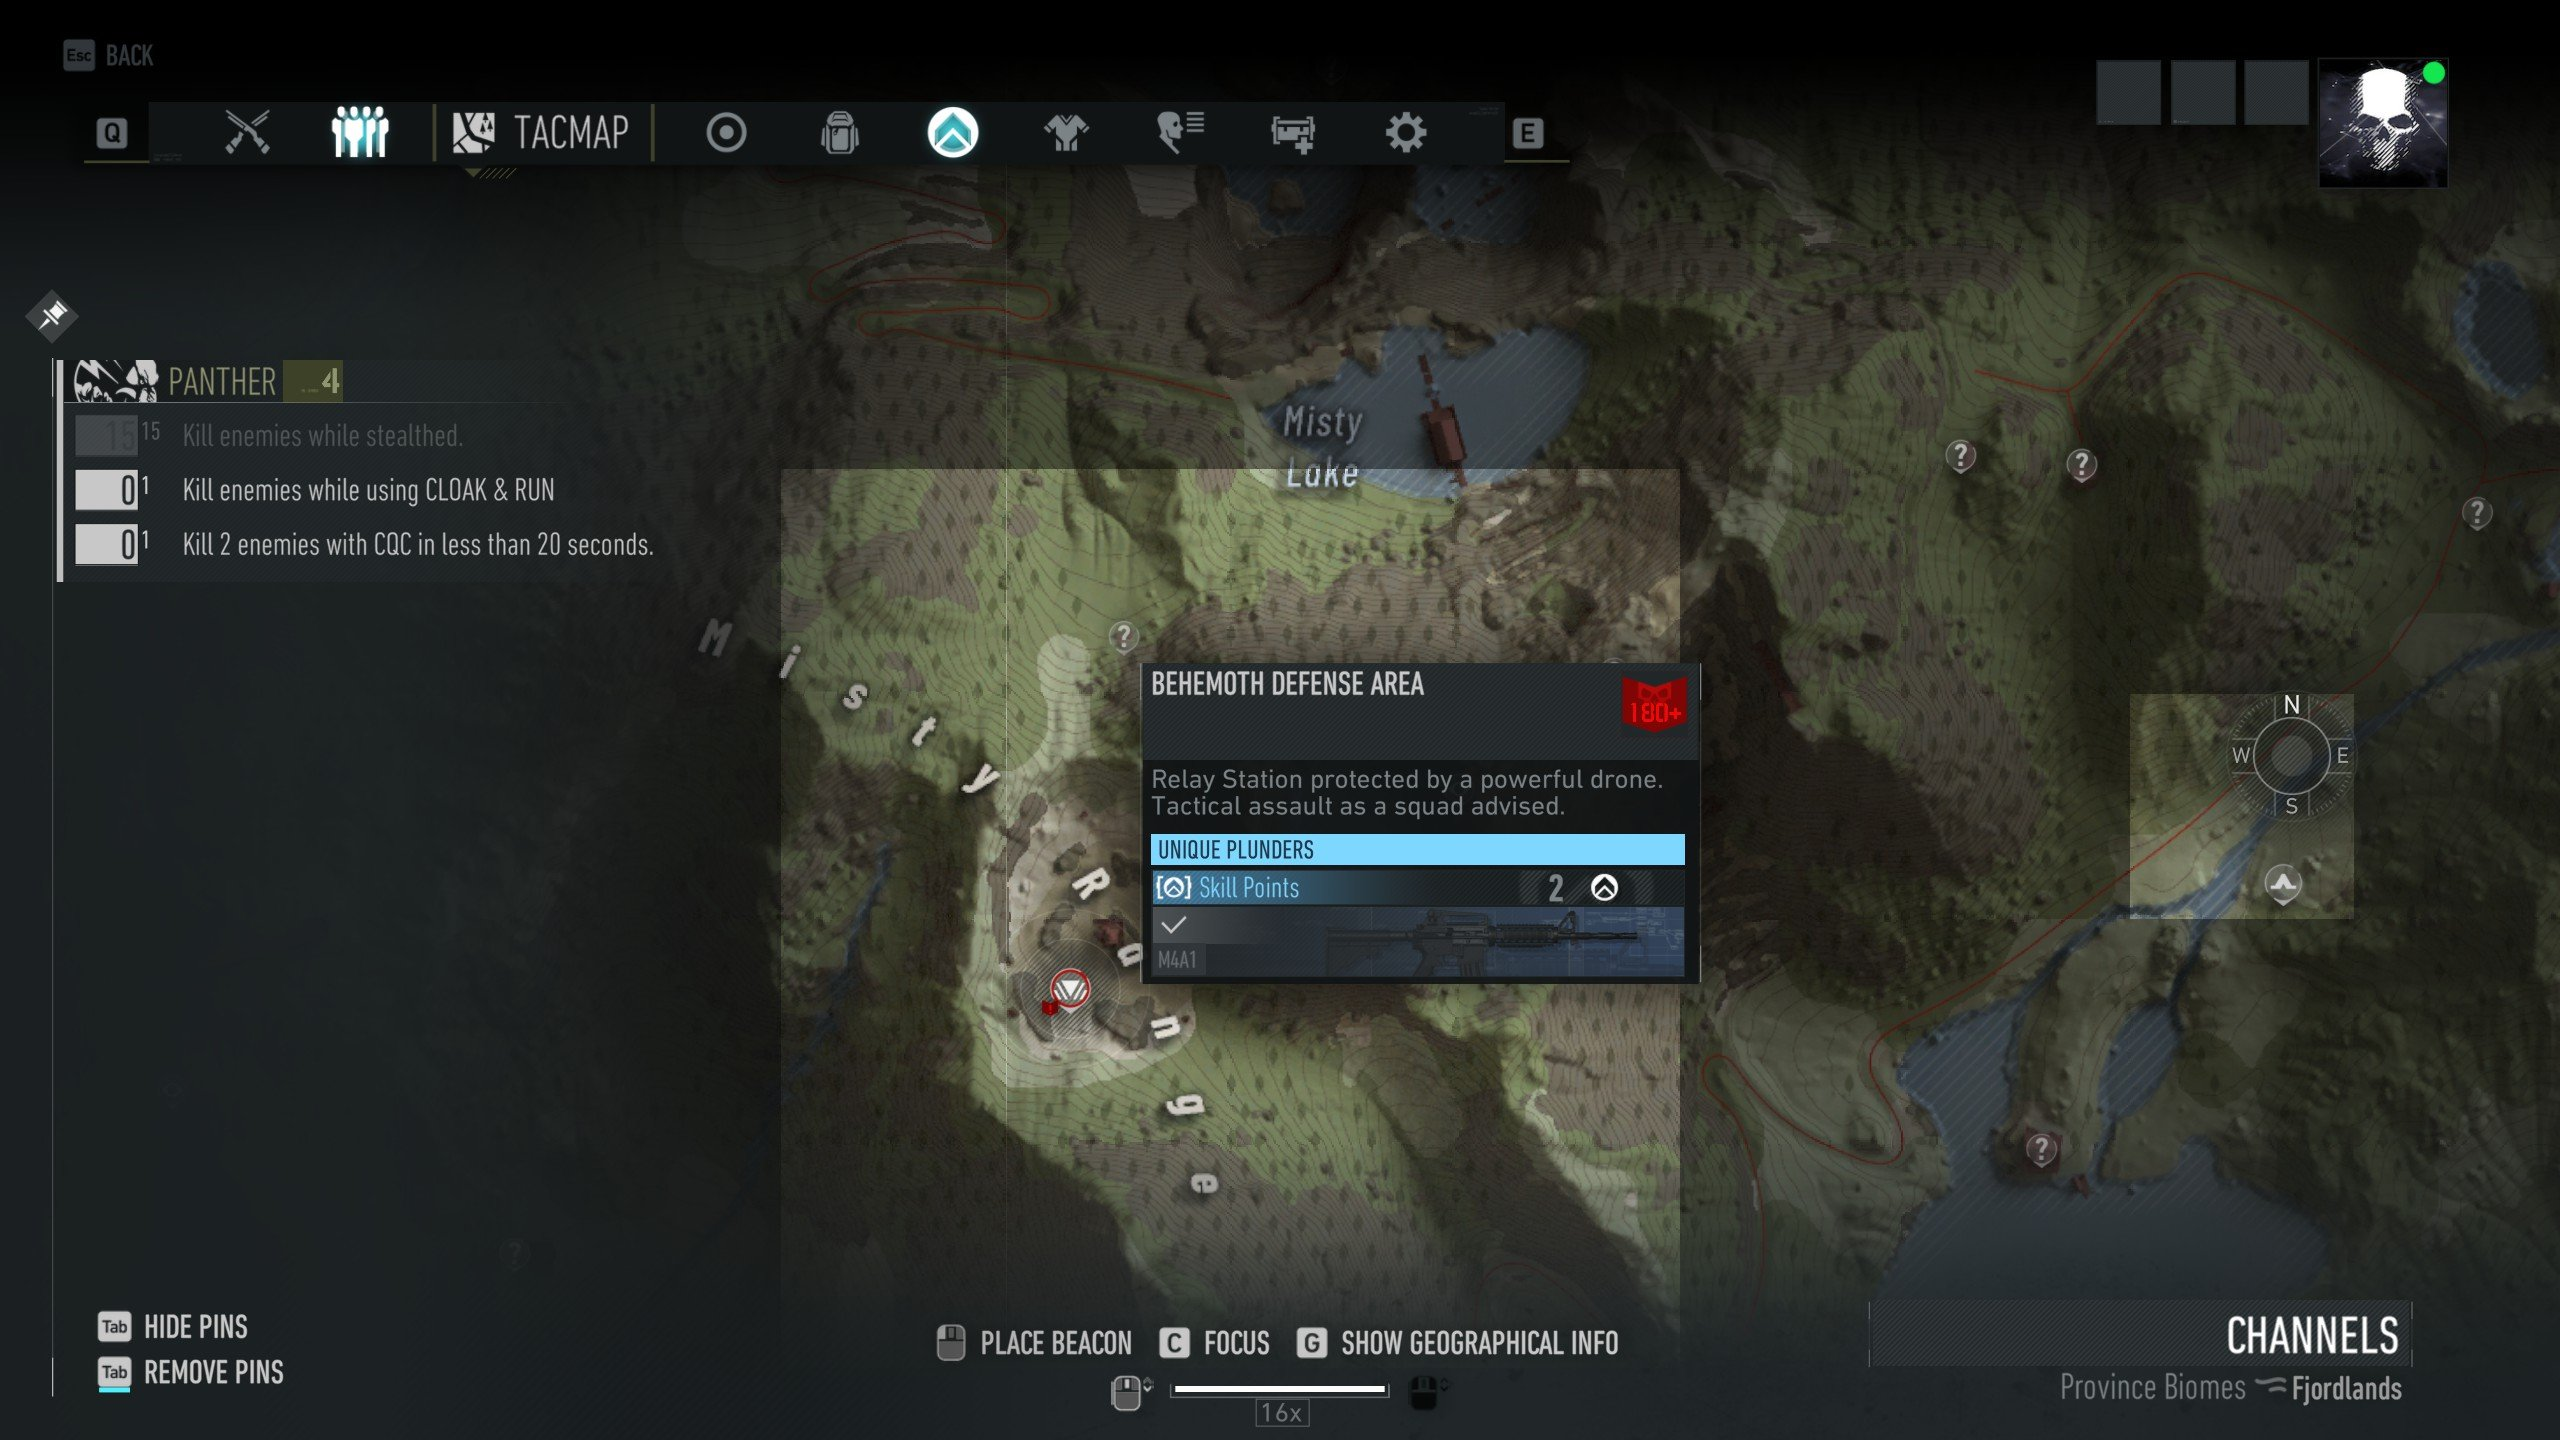 M4A1 Blueprint Location Ghost Recon Breakpoint